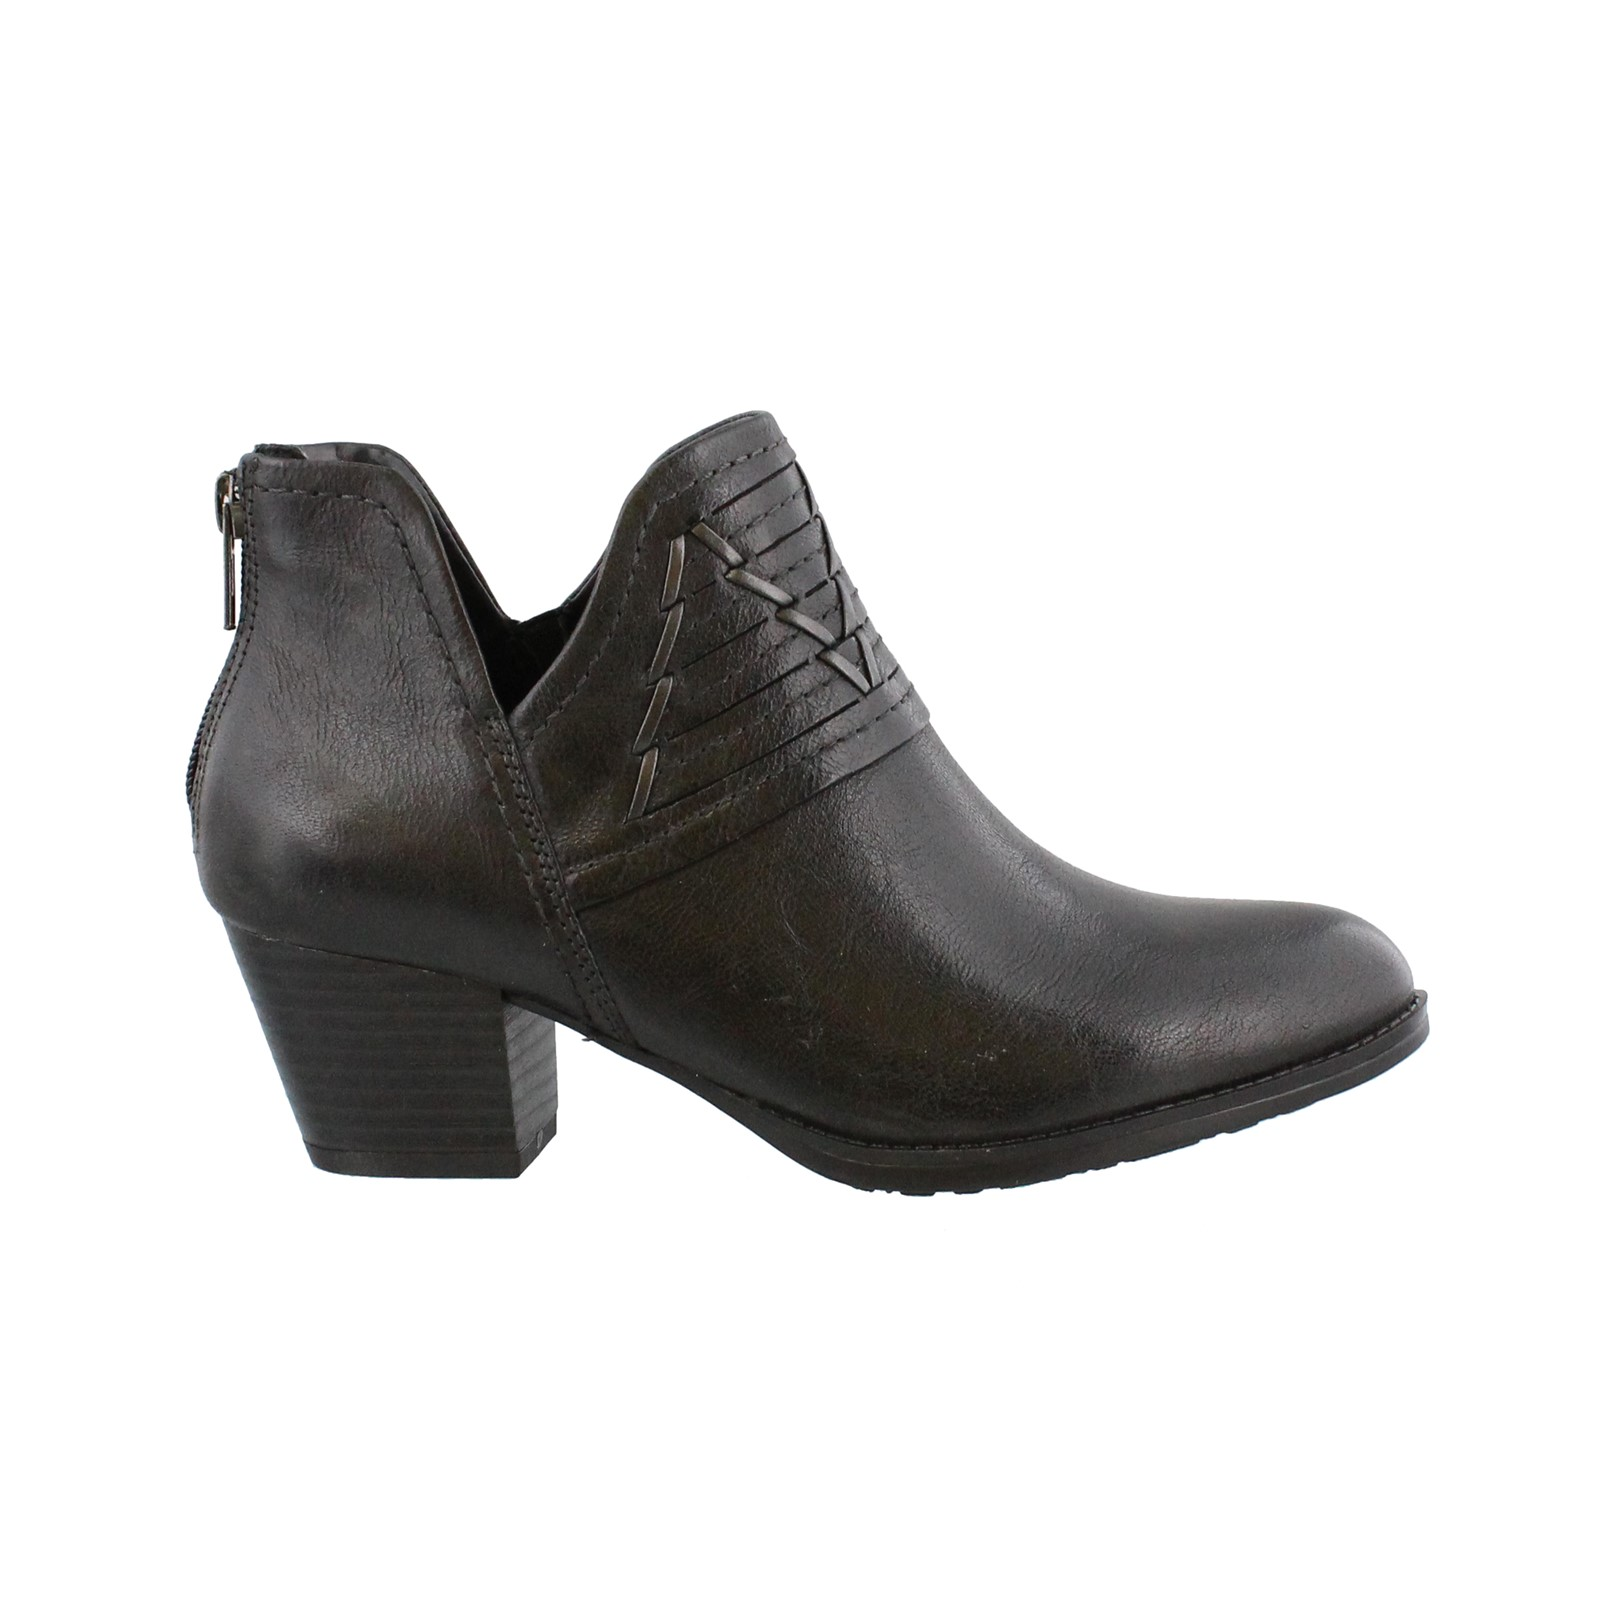 Women's Earth, Merlin Ankle Boots